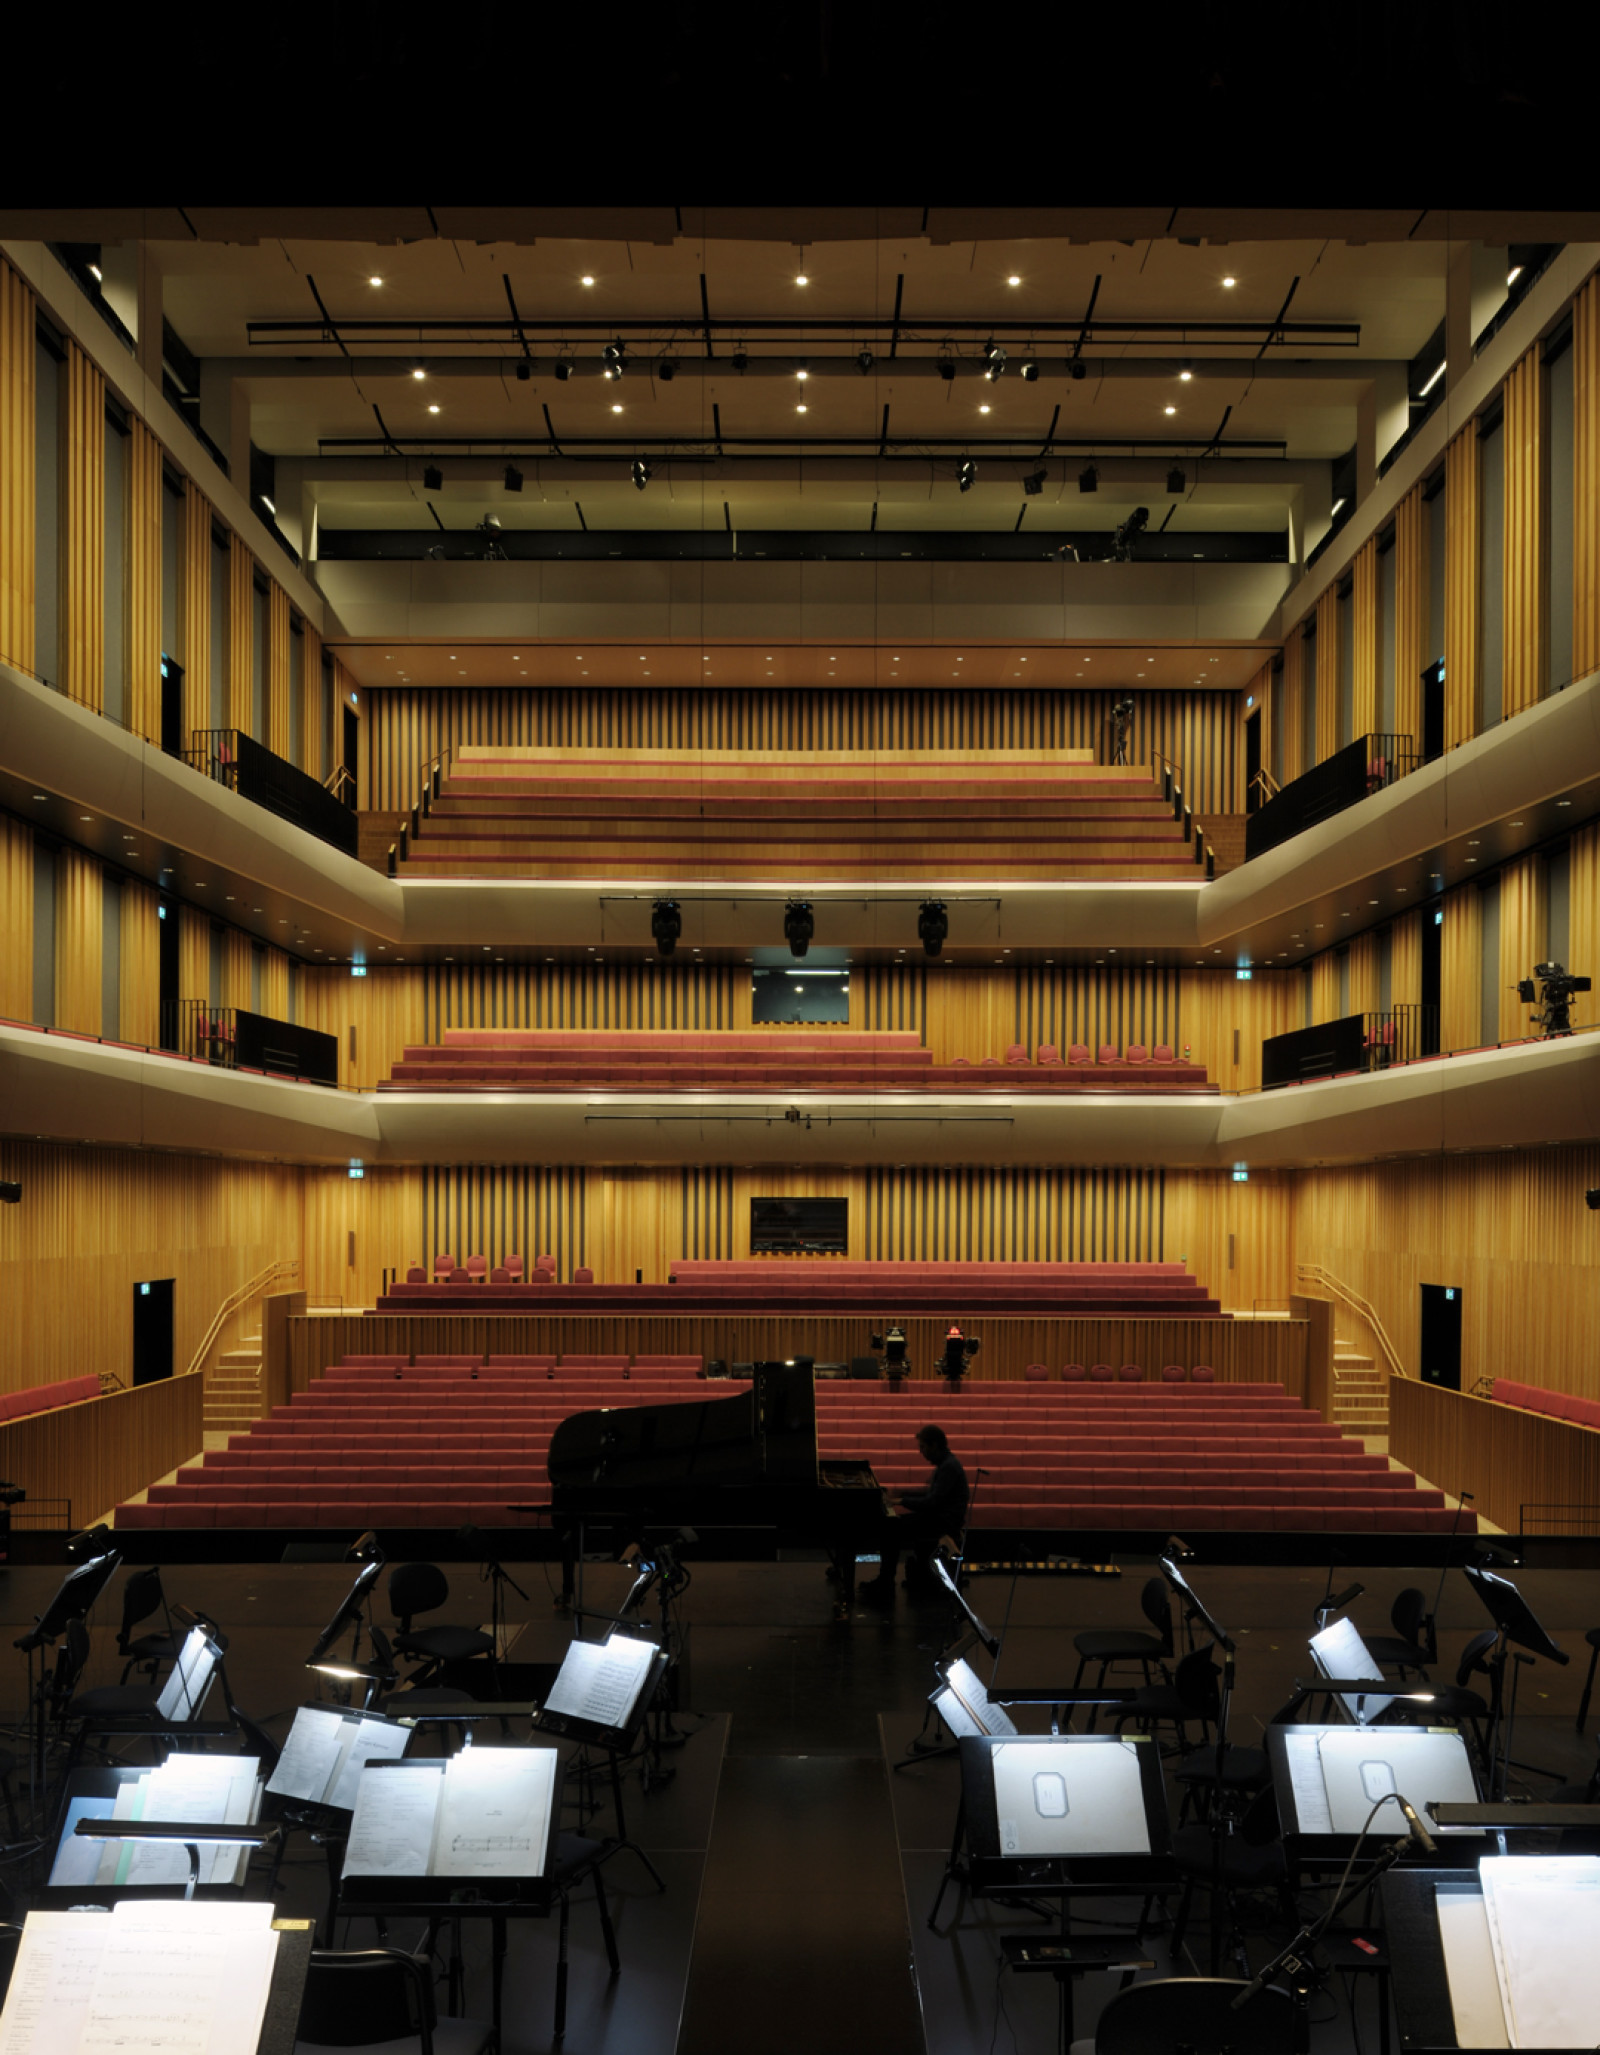 Dark, Arkitekter, Dark Arkitekter, Architects, Dark Architects, DRDH, DRDH Architects, Bodø, Norway, Norge, Stormen, Stormen kulturkvartal, Stormen culture quarter, library, bibliotek, concert hall, concert scene, konsertscene, konserthall, music hall, urban design, granite, konsertsal